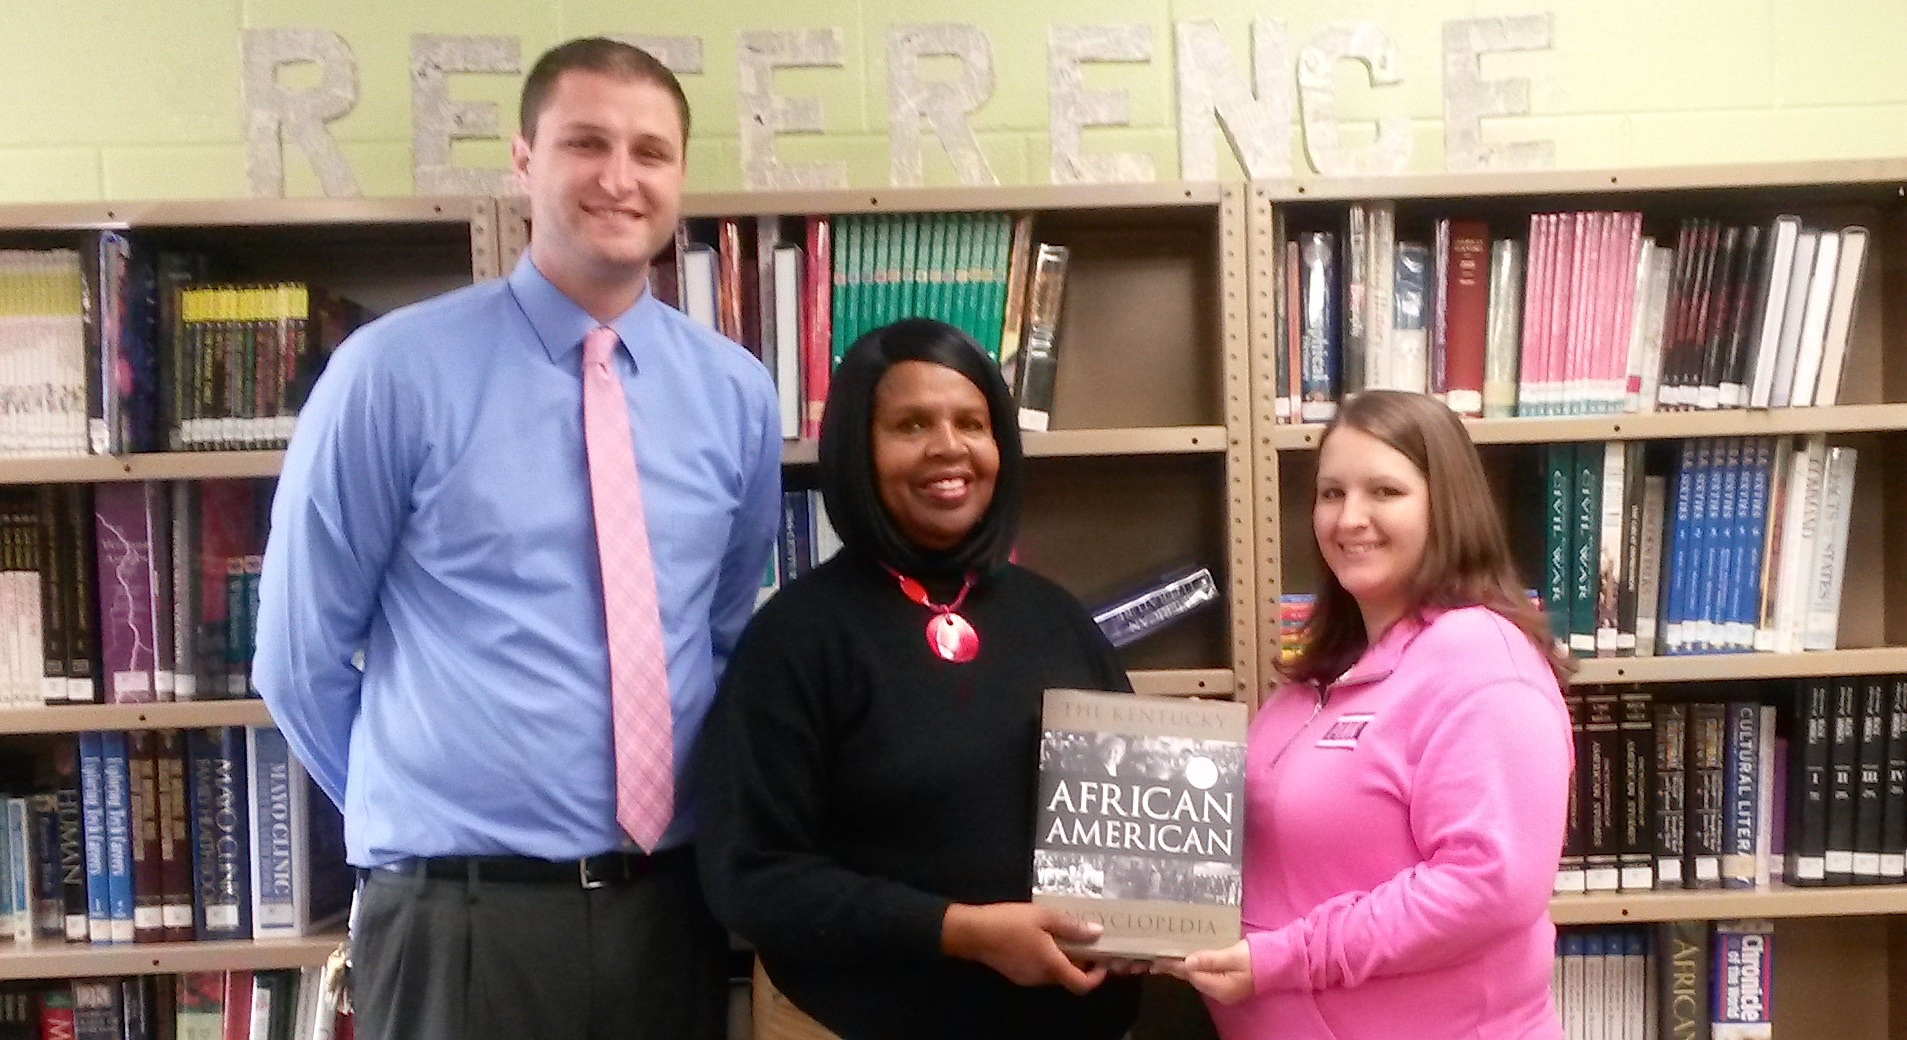 Green County High School received the Kentucky African American Encyclopedia from Carolyn Compton, GCU Board Member. From left are: Clint Graham, Assistant Principal of Green county High School; Compton; and Carla Hoosier, GHS Librarian. (photo from GCHS)